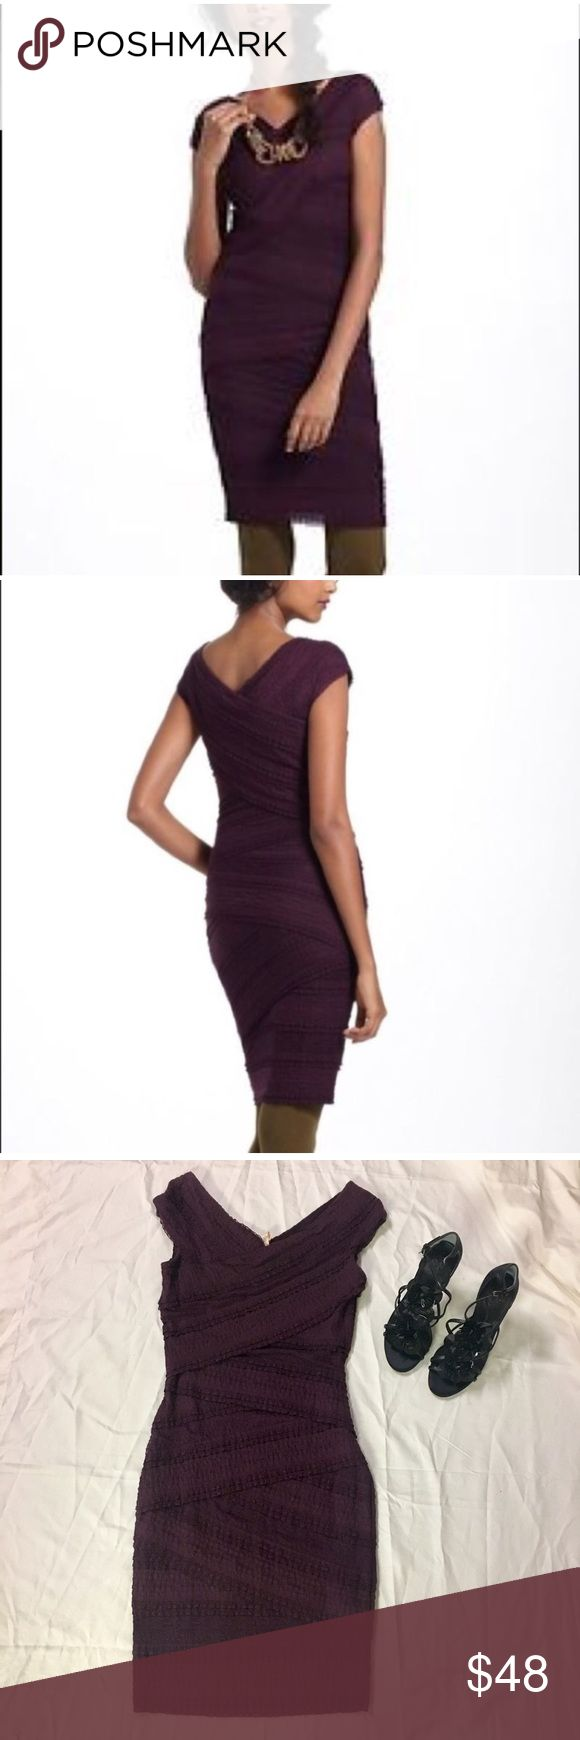 BAILEY 44 {Anthro} Lace Column Dress BAILEY 44 (ANTHROPOLOGIE)- Stunning plum-colored tiered lace bodycon dress with v-neck and cap sleeves. Lined, super soft material. Size Small. Excellent preowned condition; just a few tiny snags due to material. This comfy, sexy dress is perfect for cocktails, dinner, or a night out. Necklace sold separately. Open to offers. Anthropologie Dresses